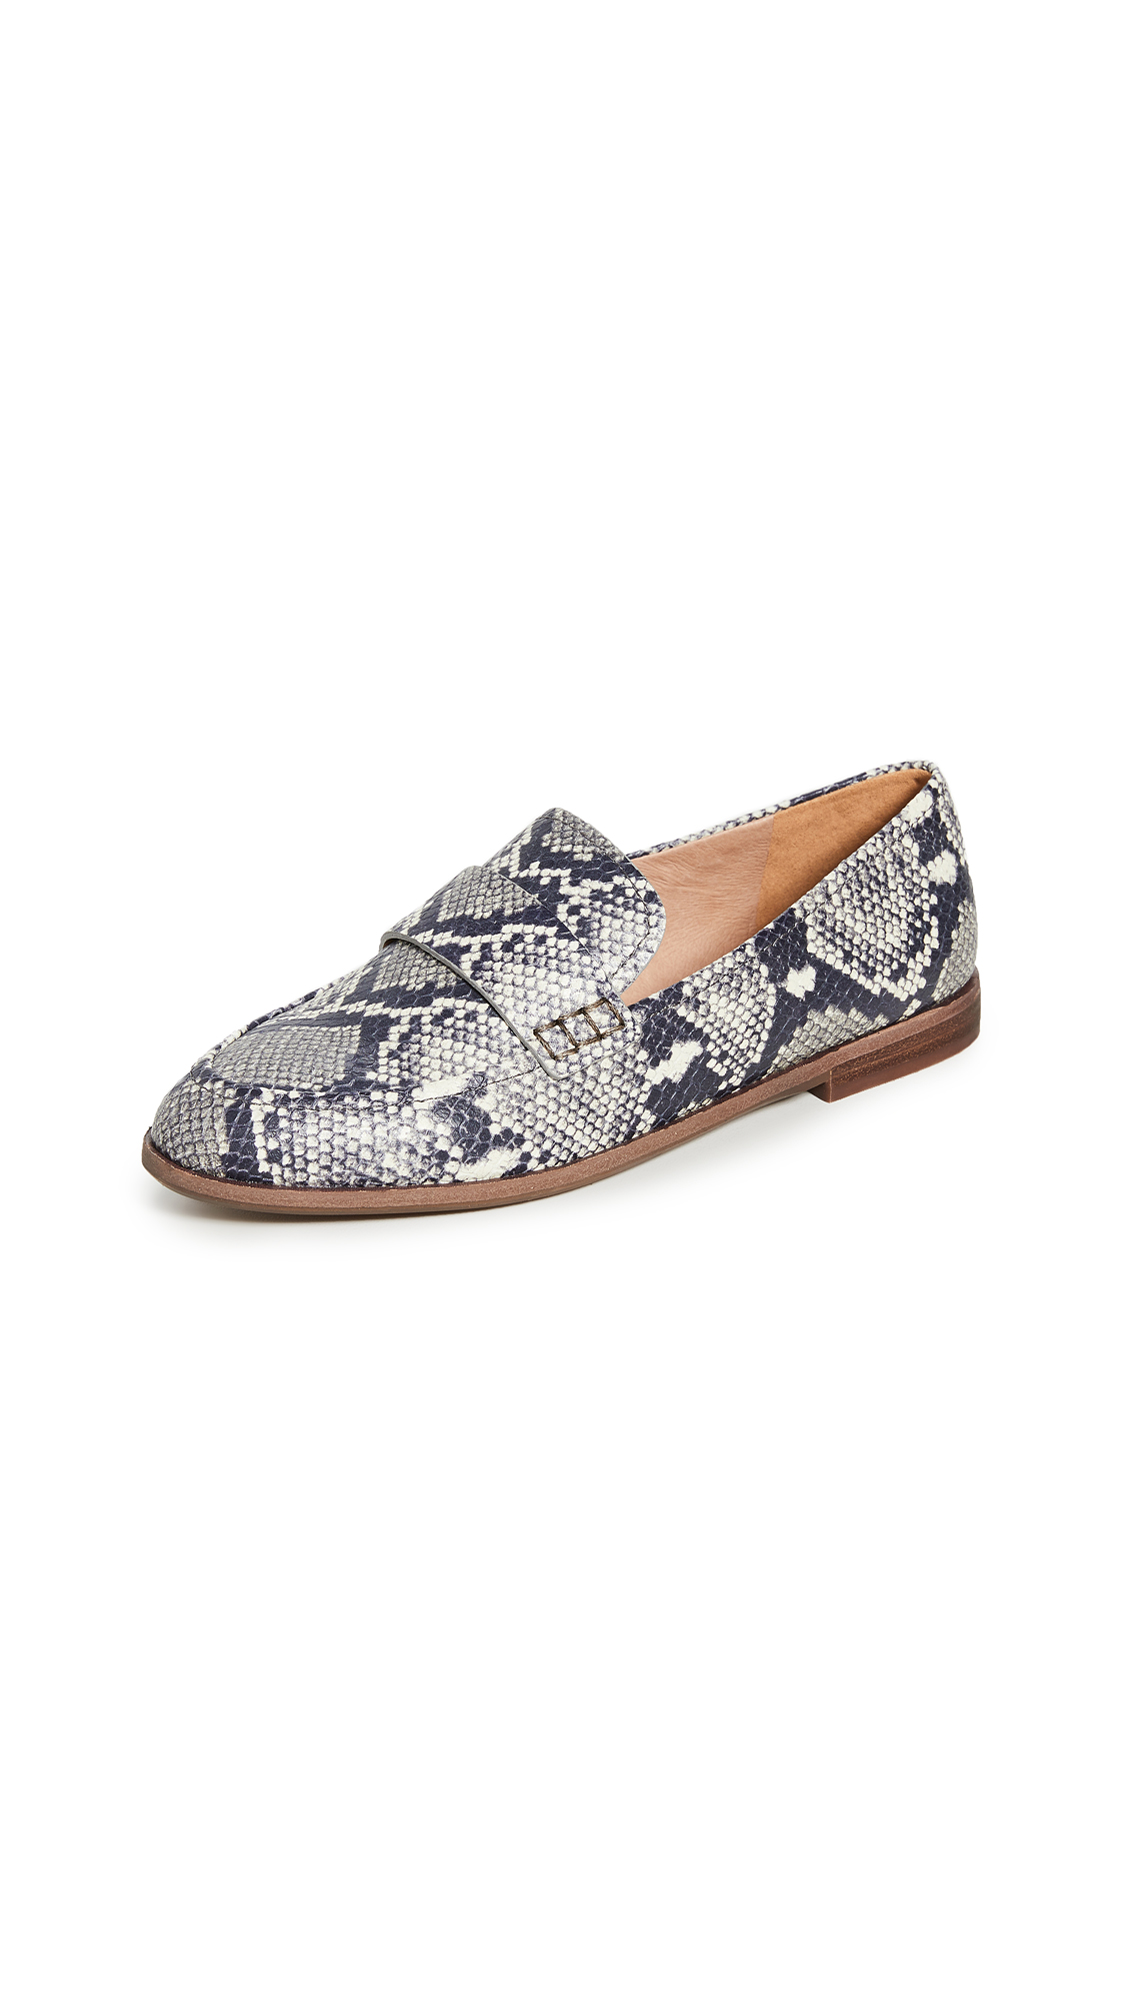 Buy Madewell Annie Loafers online, shop Madewell